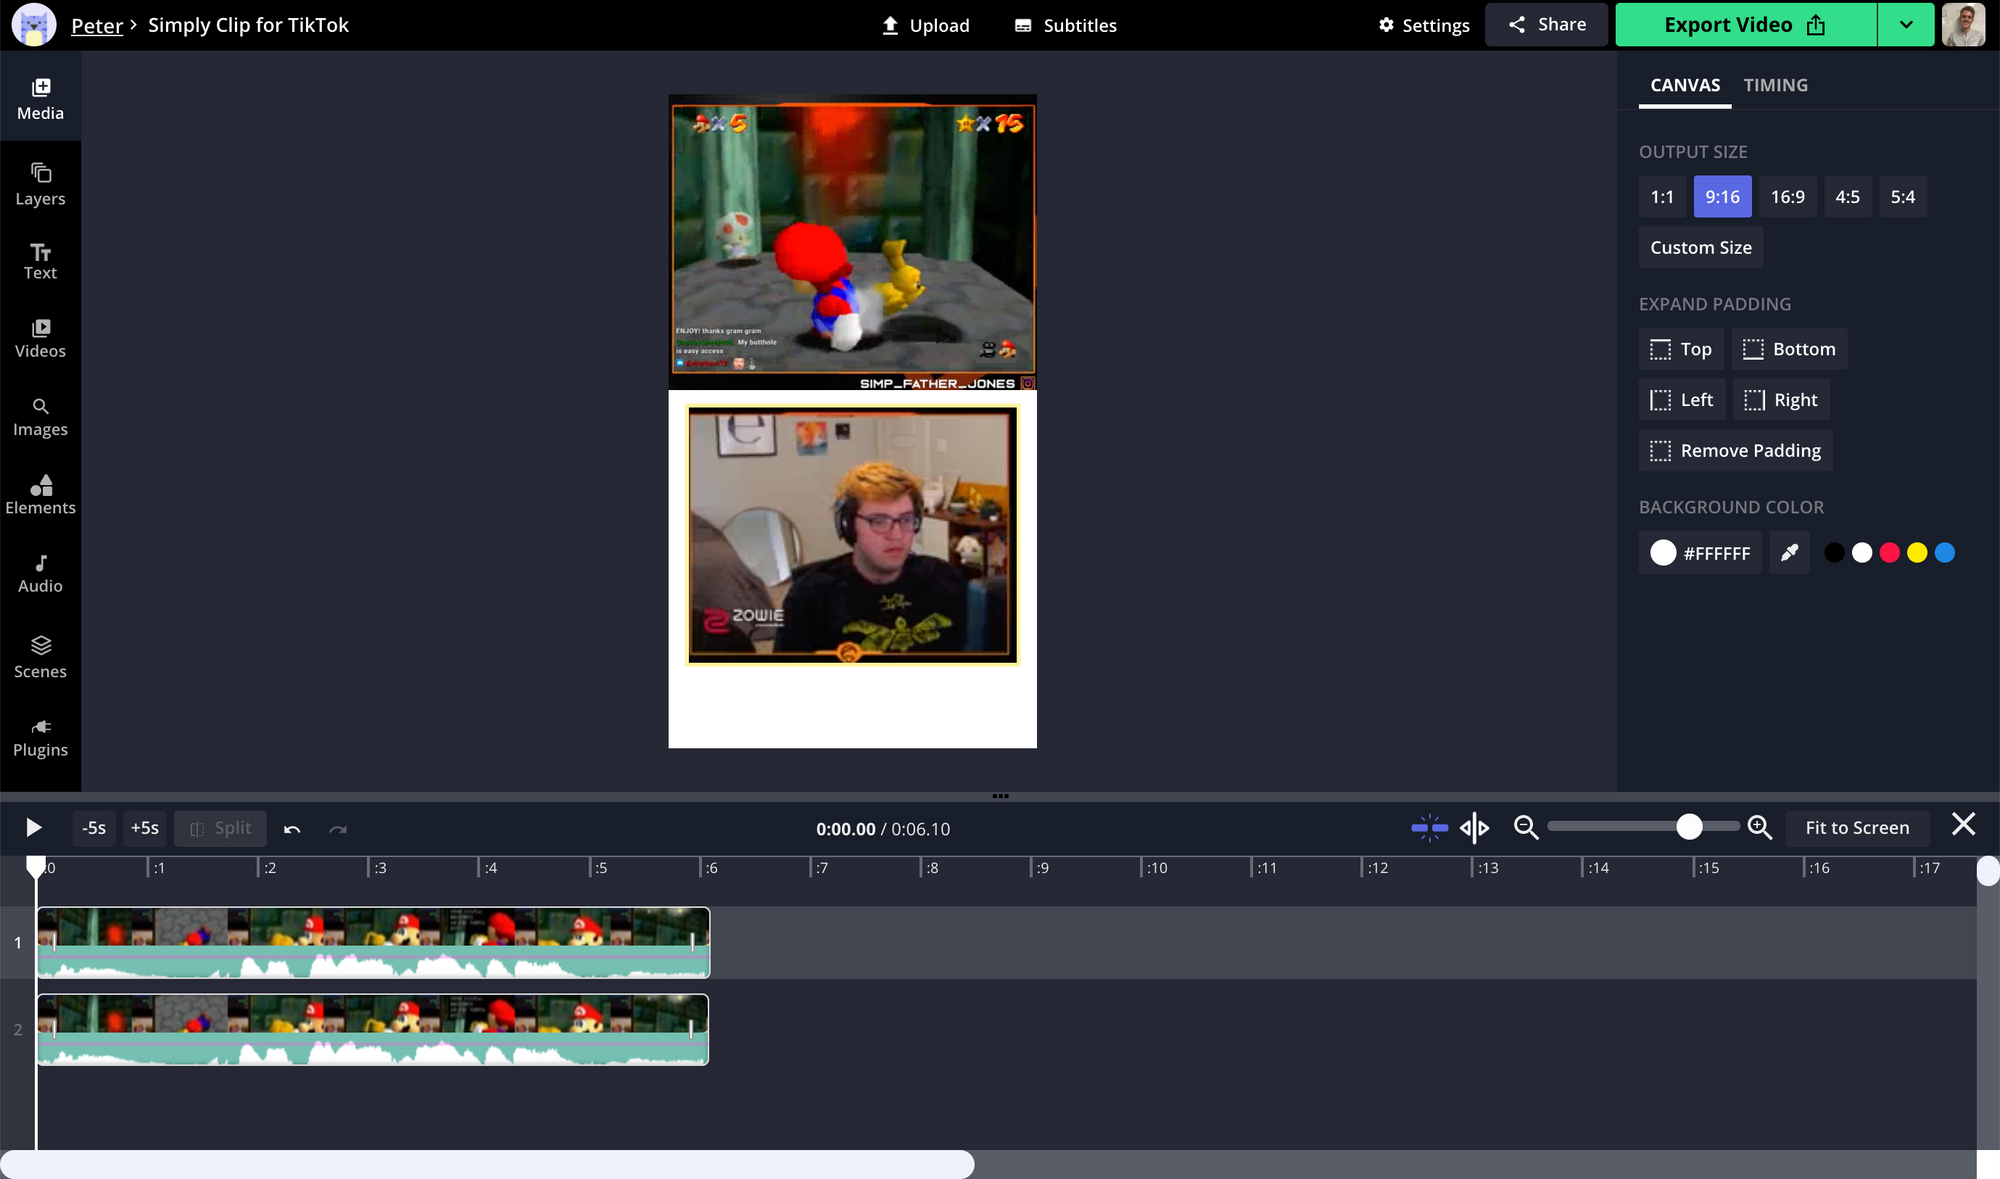 A screenshot showing how to reformat Twitch Clips for TikTok in the Kapwing Studio.